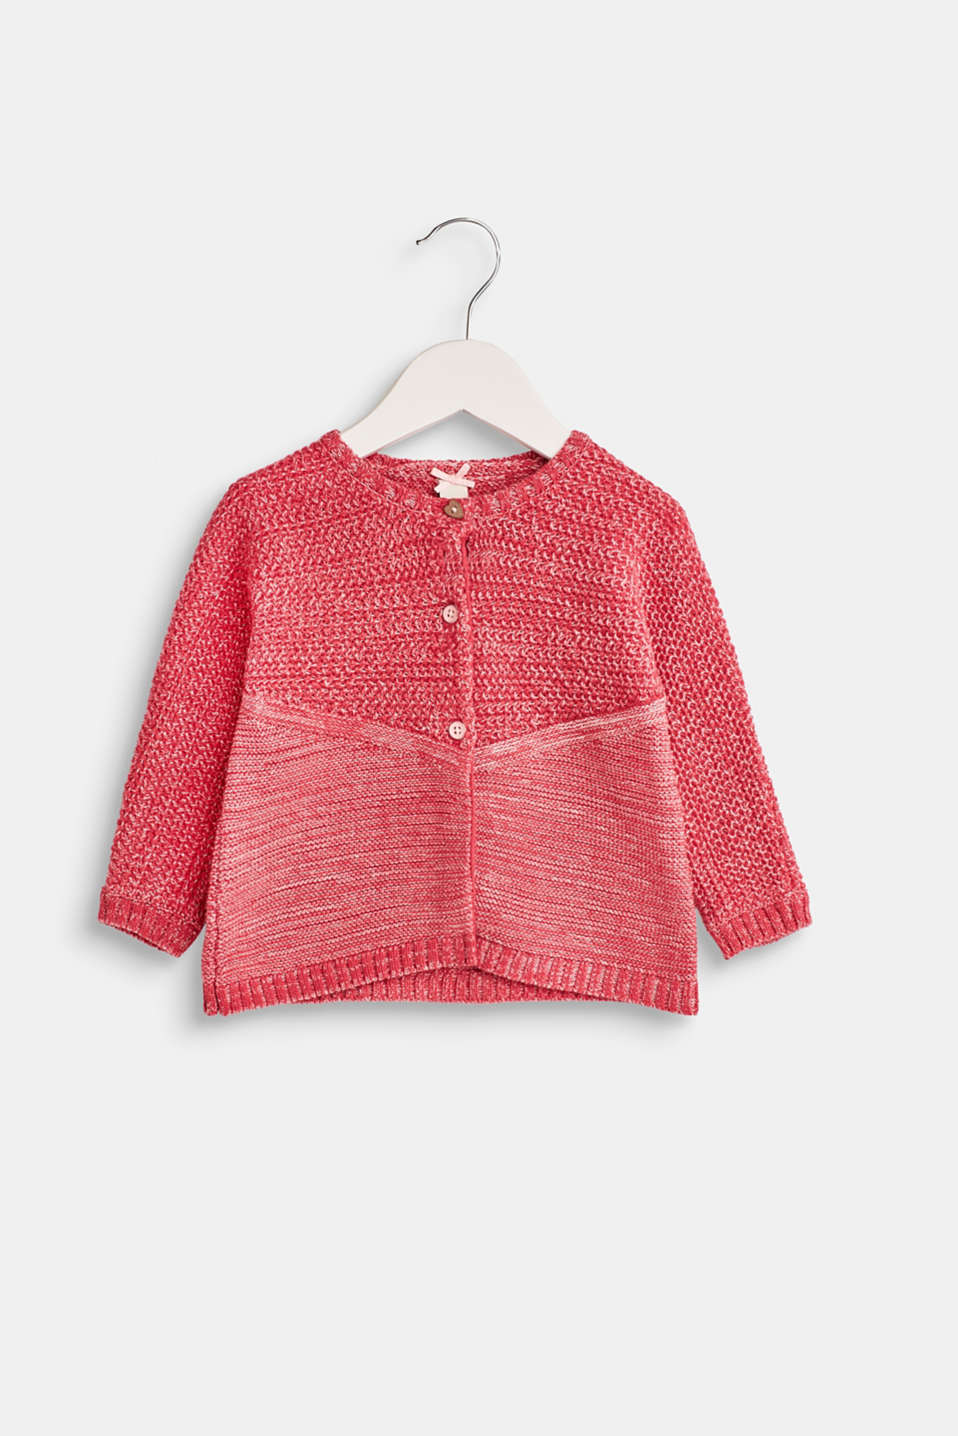 Esprit - Melange sweatshirt cardigan, 100% cotton